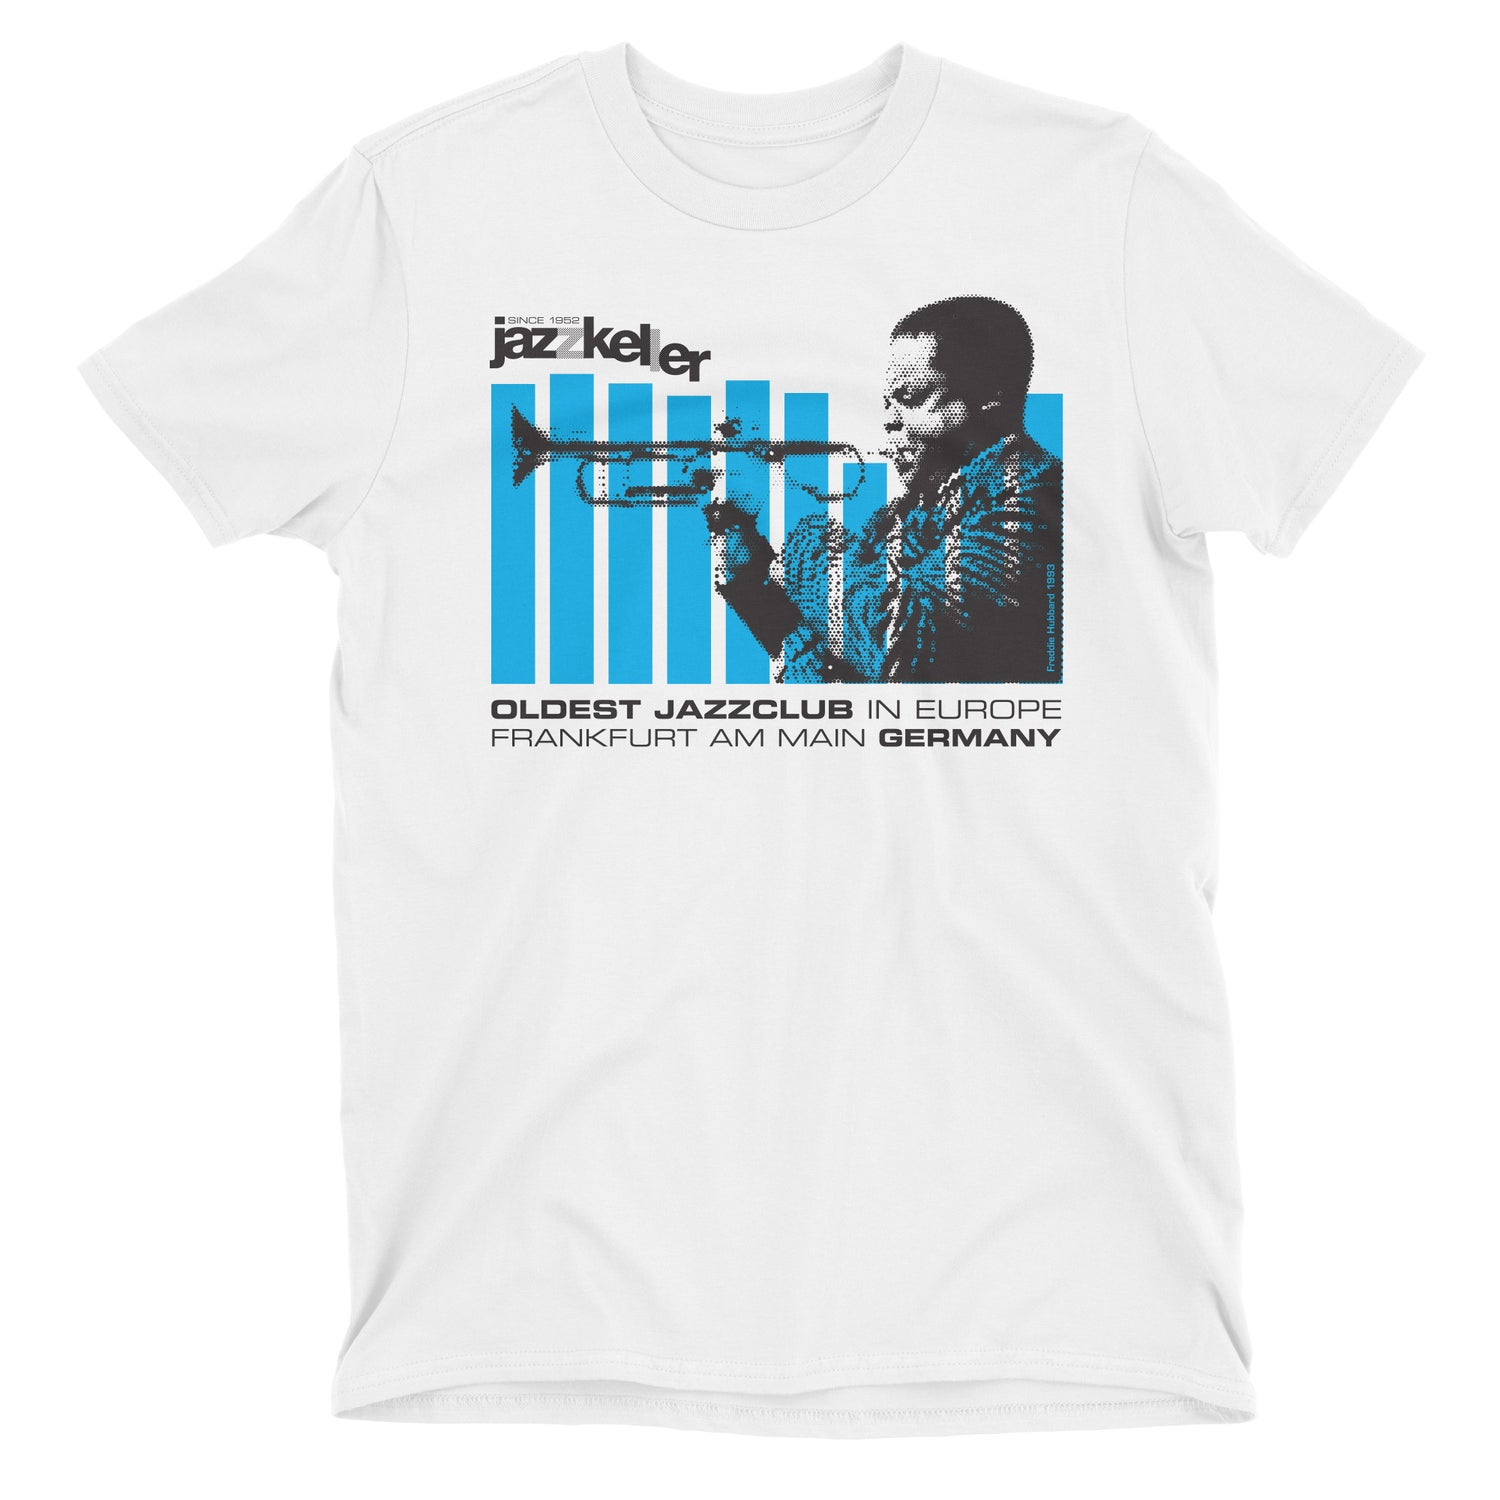 Image of JK1993 Limited-Edition T-Shirt 100 units only printed in Germany - JUST ARRIVED